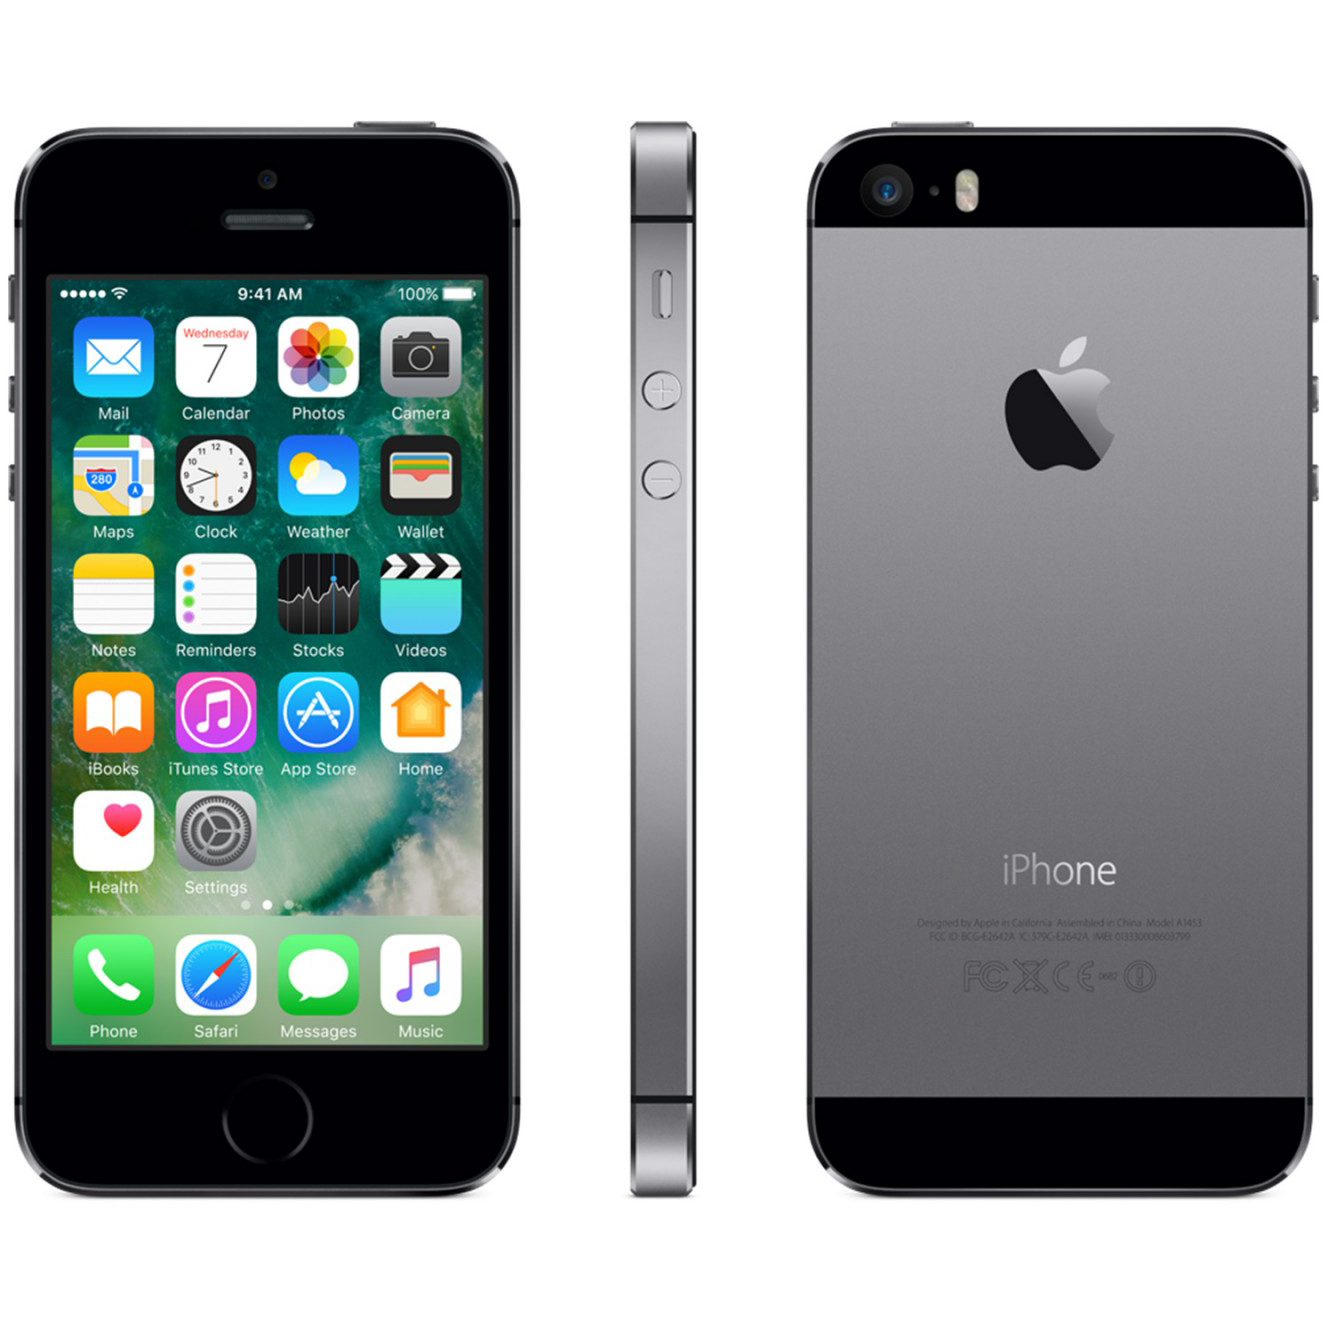 iphone 5s apple apple iphone 5s 32gb space gray handys apple iphone 5s 2951